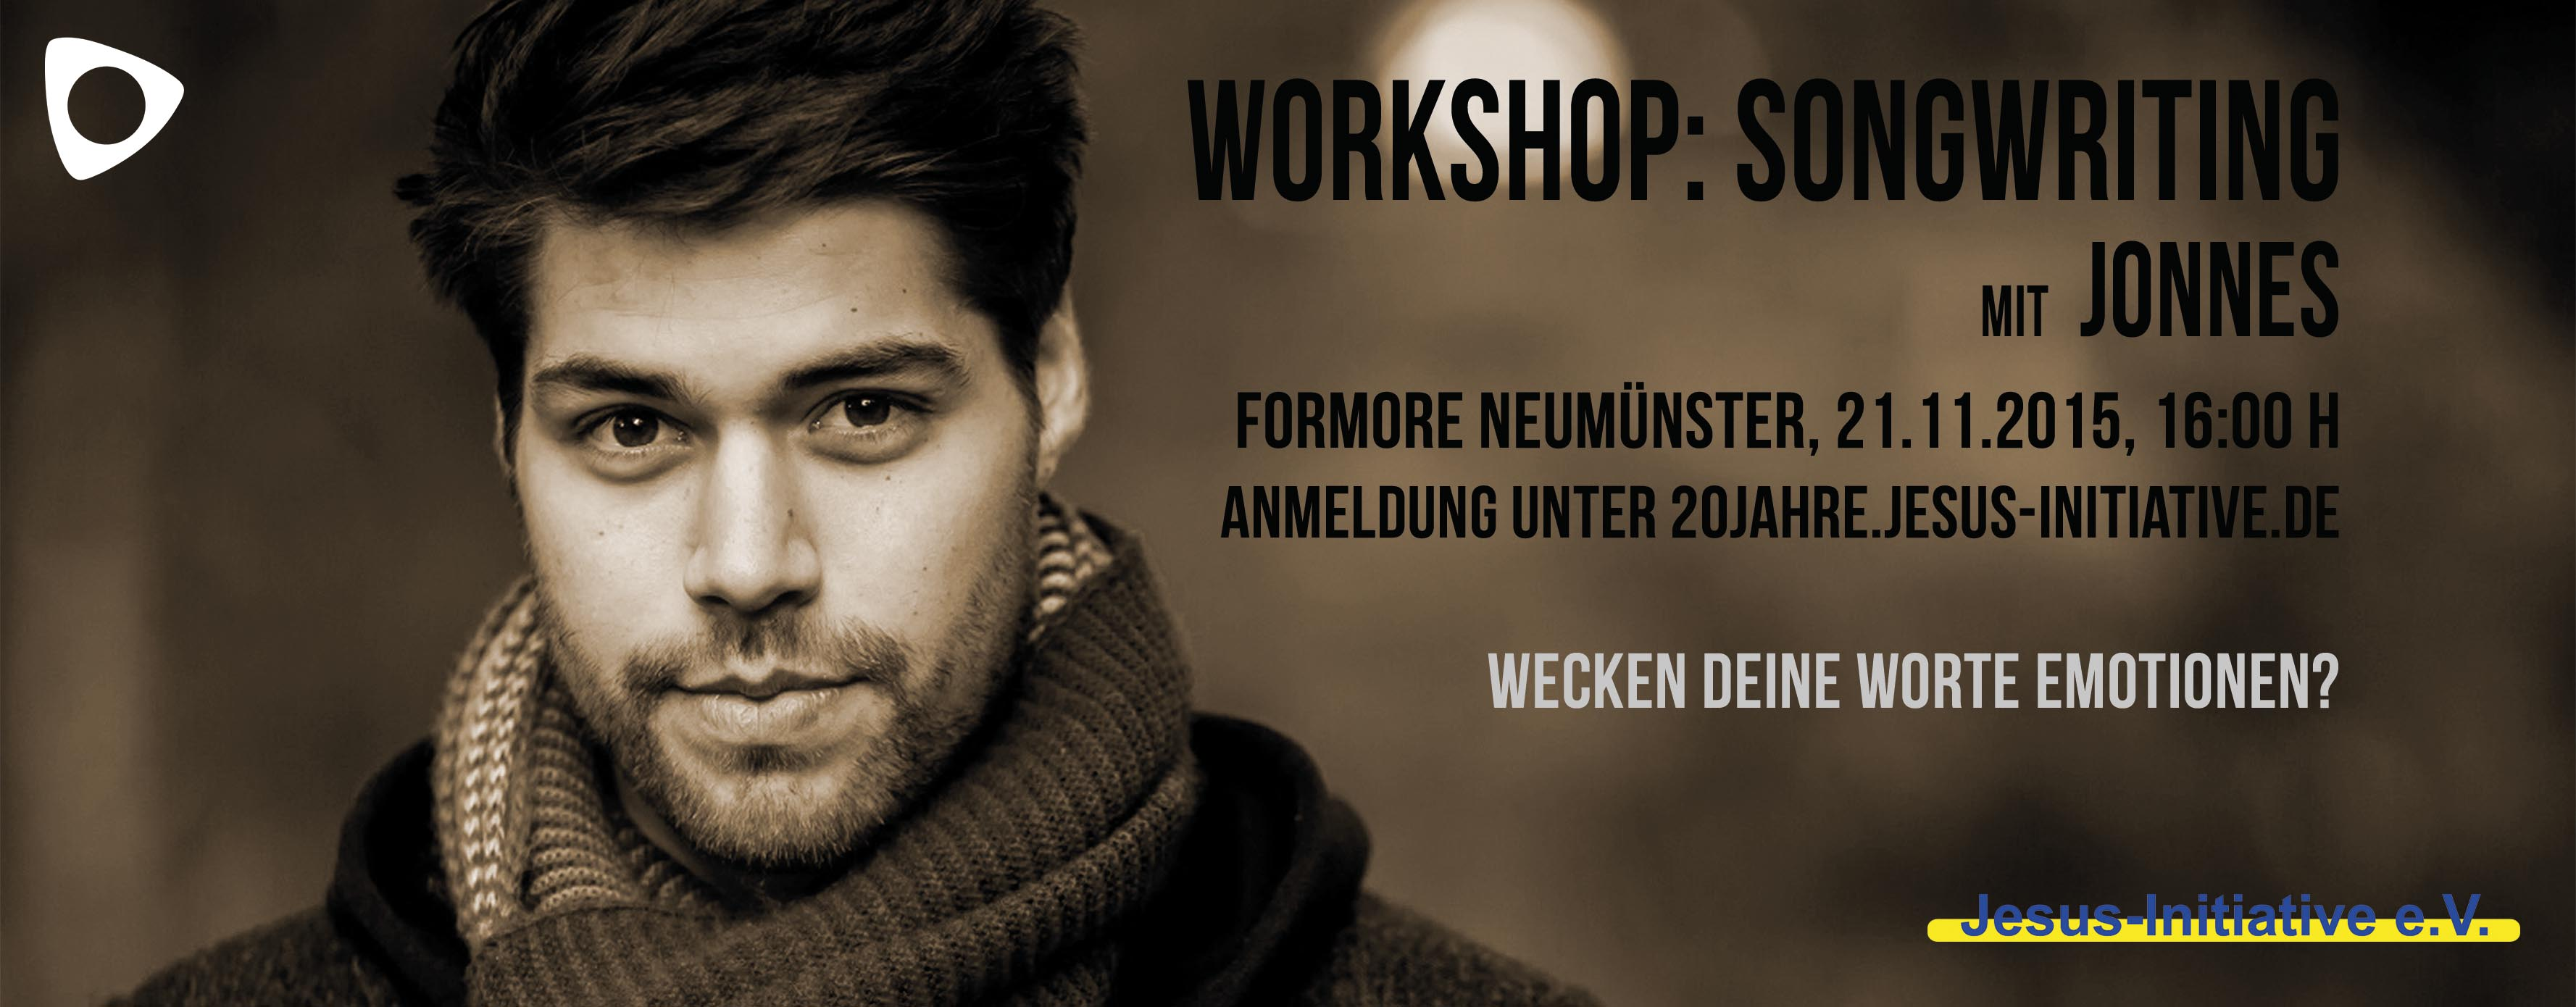 Songwriting Workshop mit Jonnes